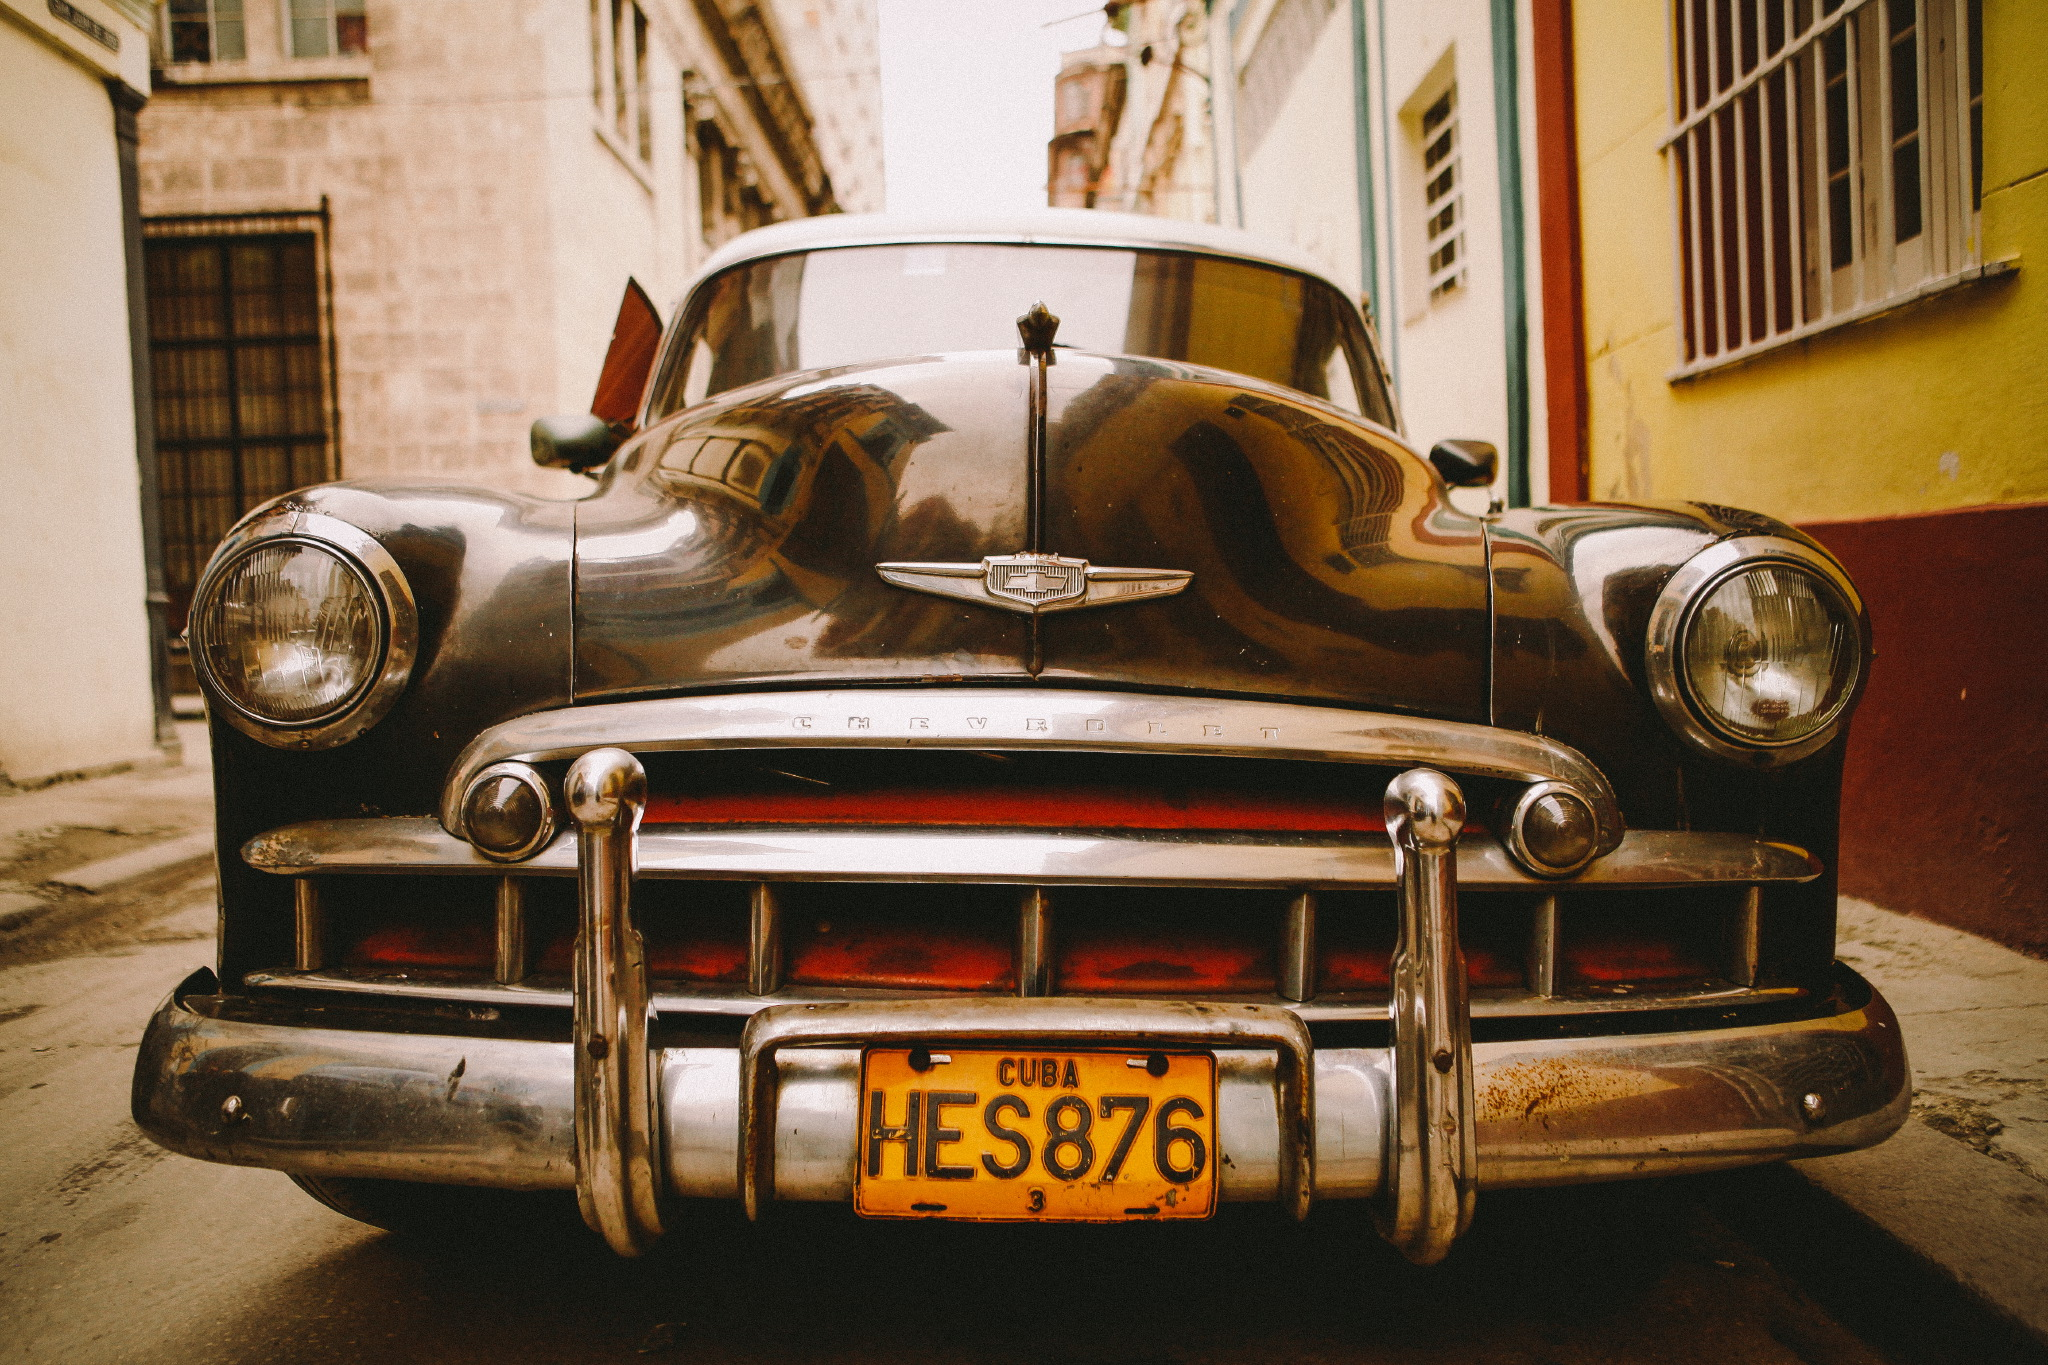 san diego wedding   photographer | close shot of black car and plate number